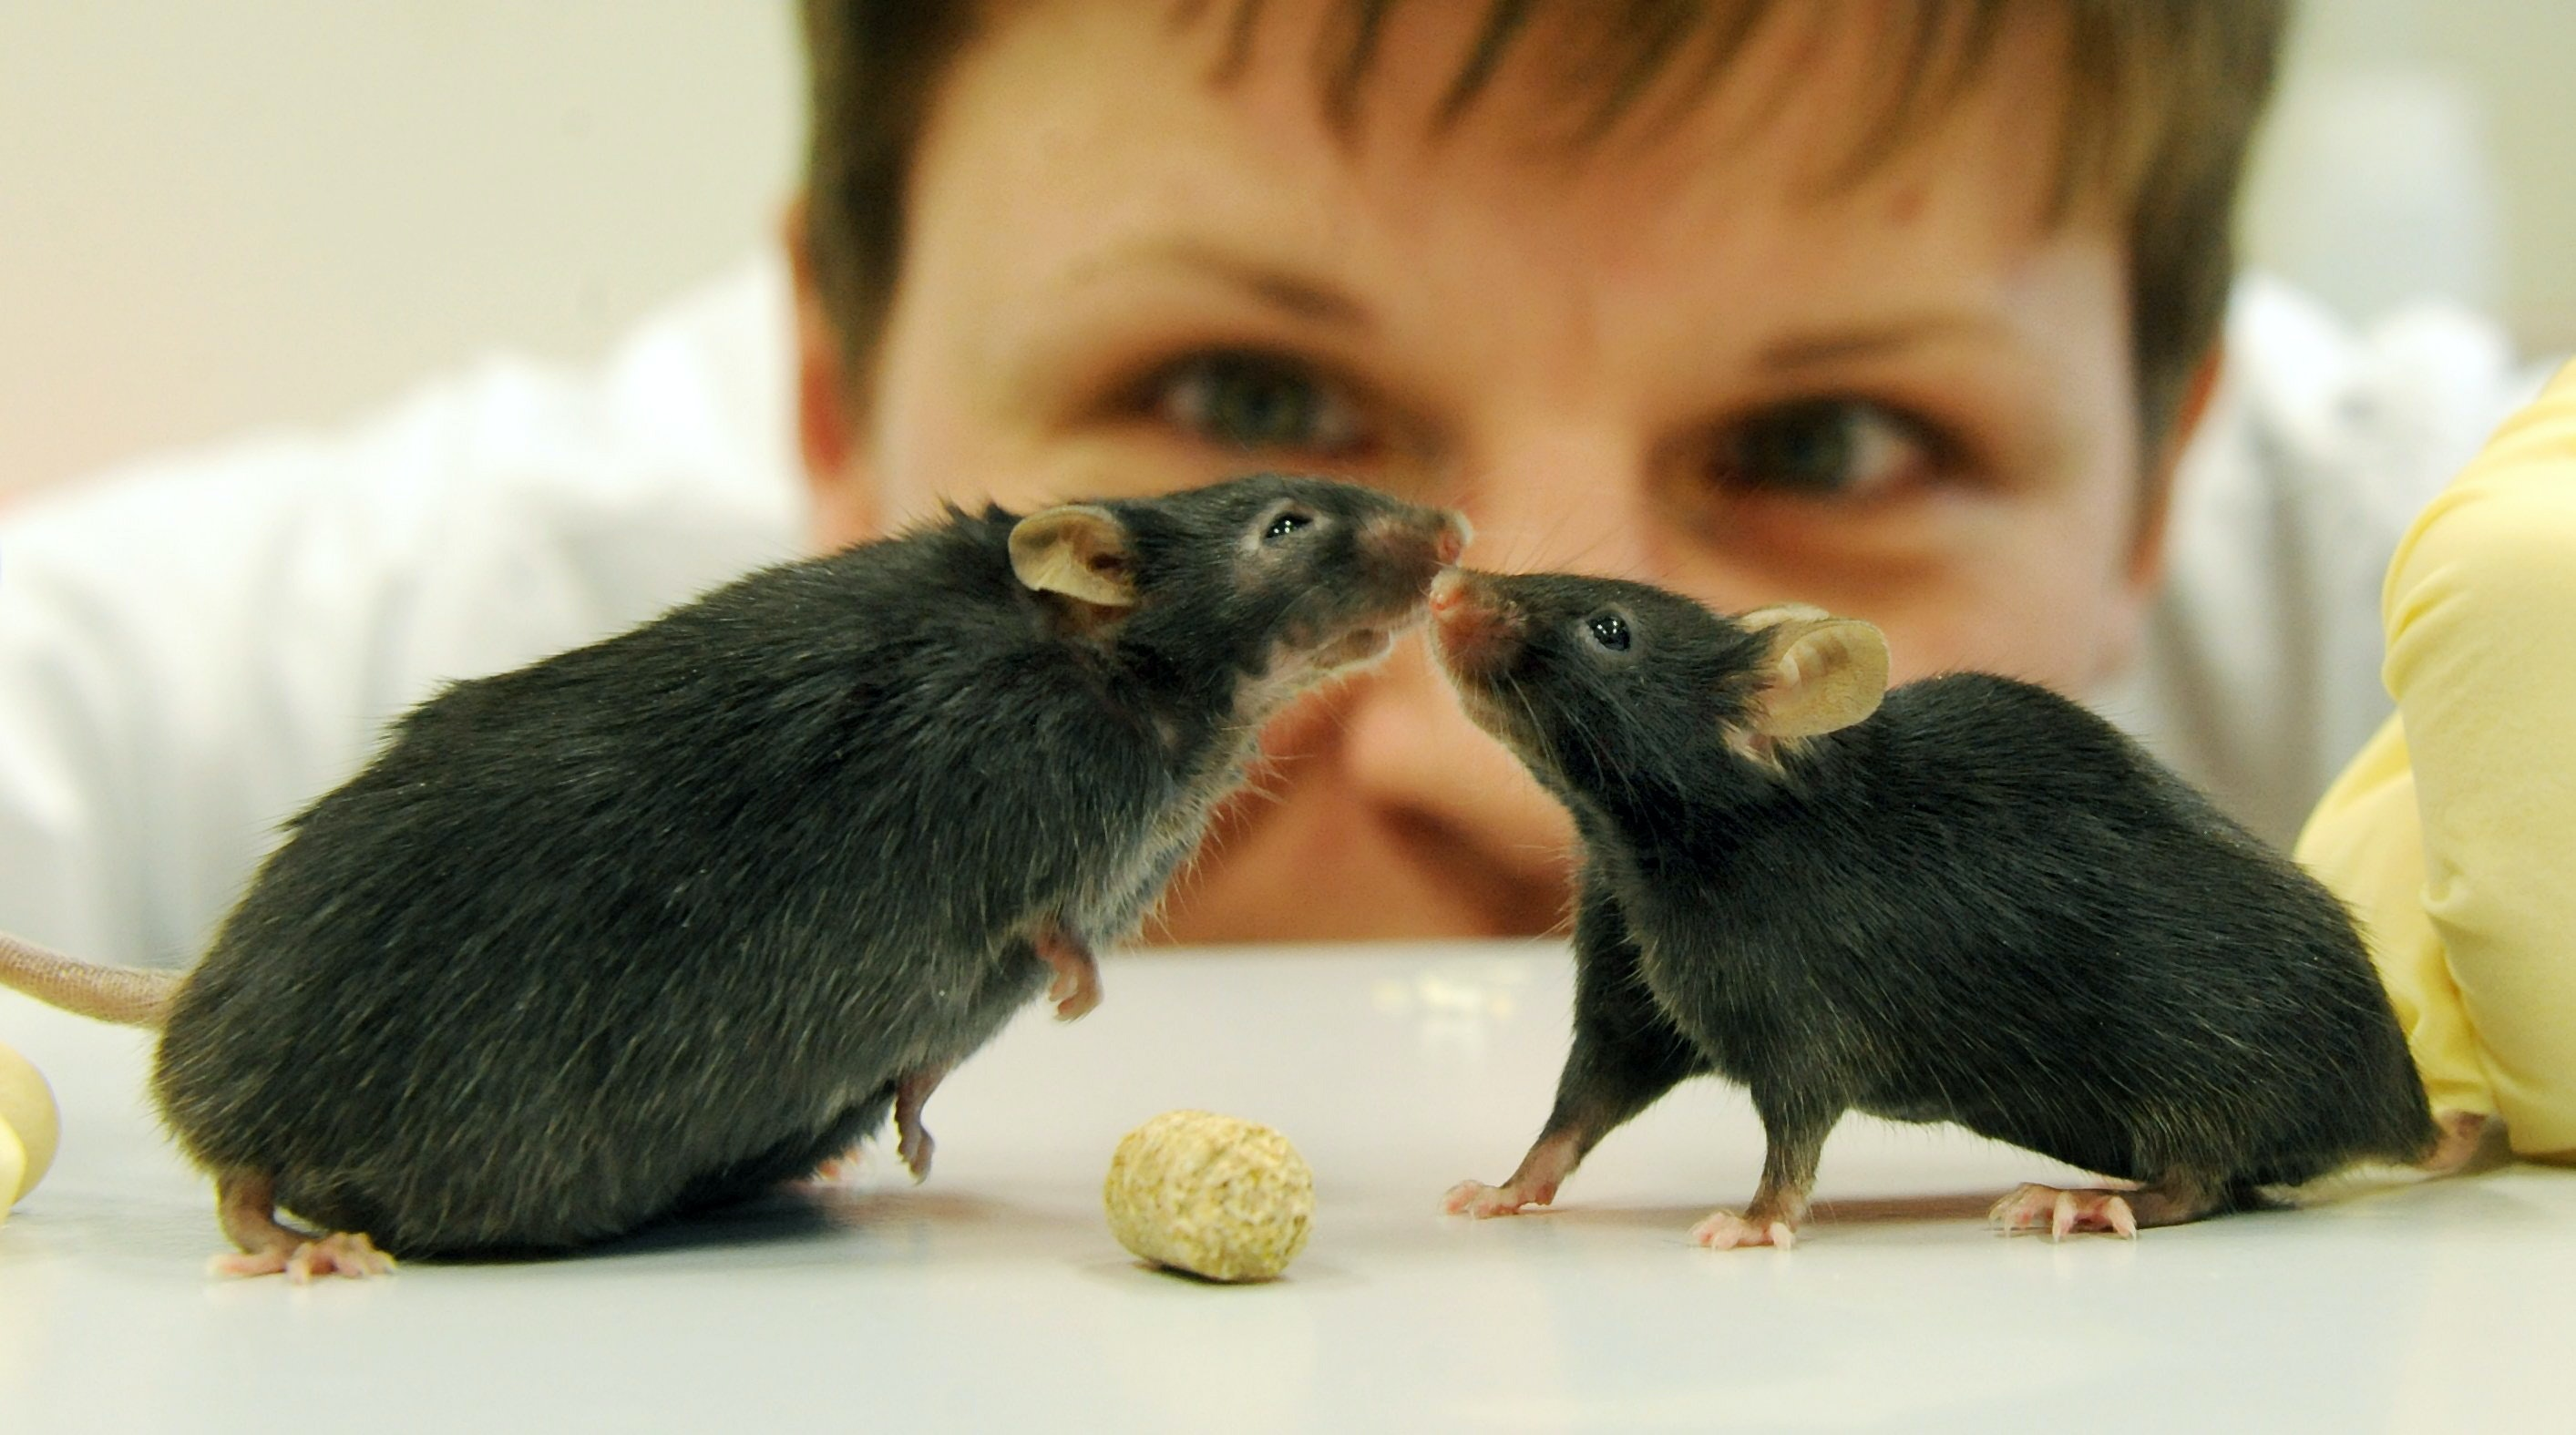 The debate about the ethics of people engaging in animal research